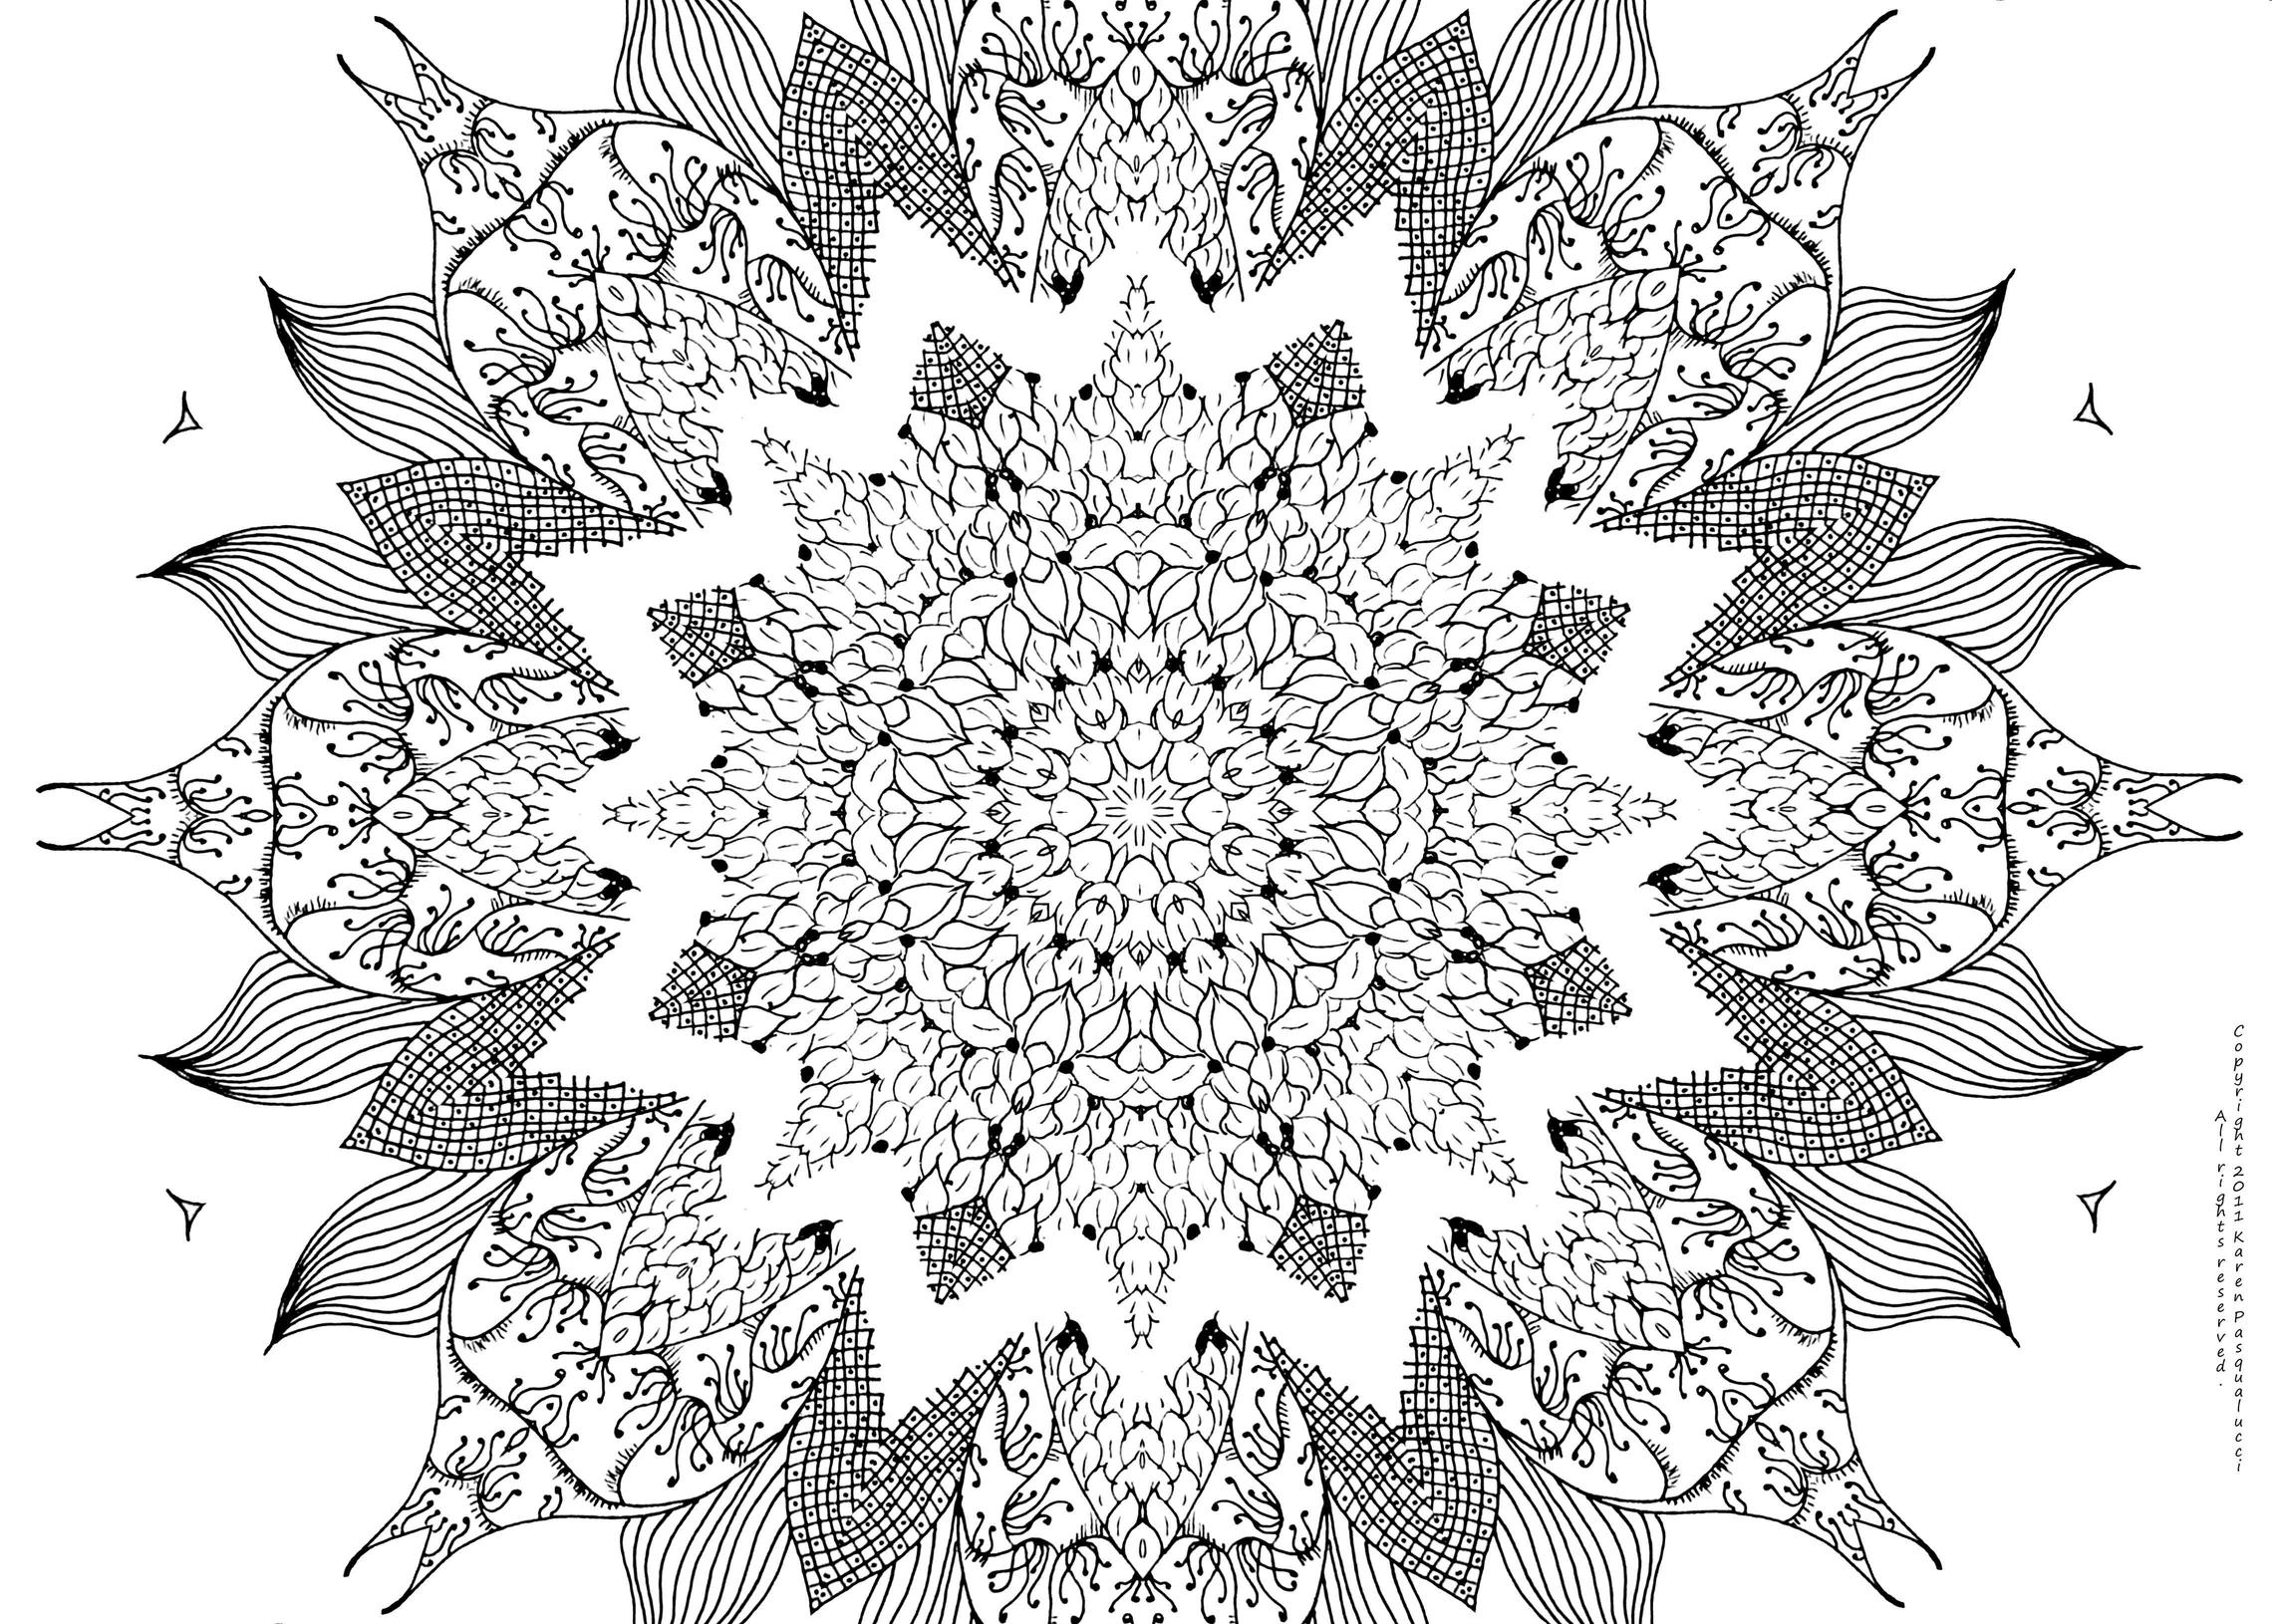 Free Mandala Coloring Pages For Adults (19 Pictures) - Colorine ...